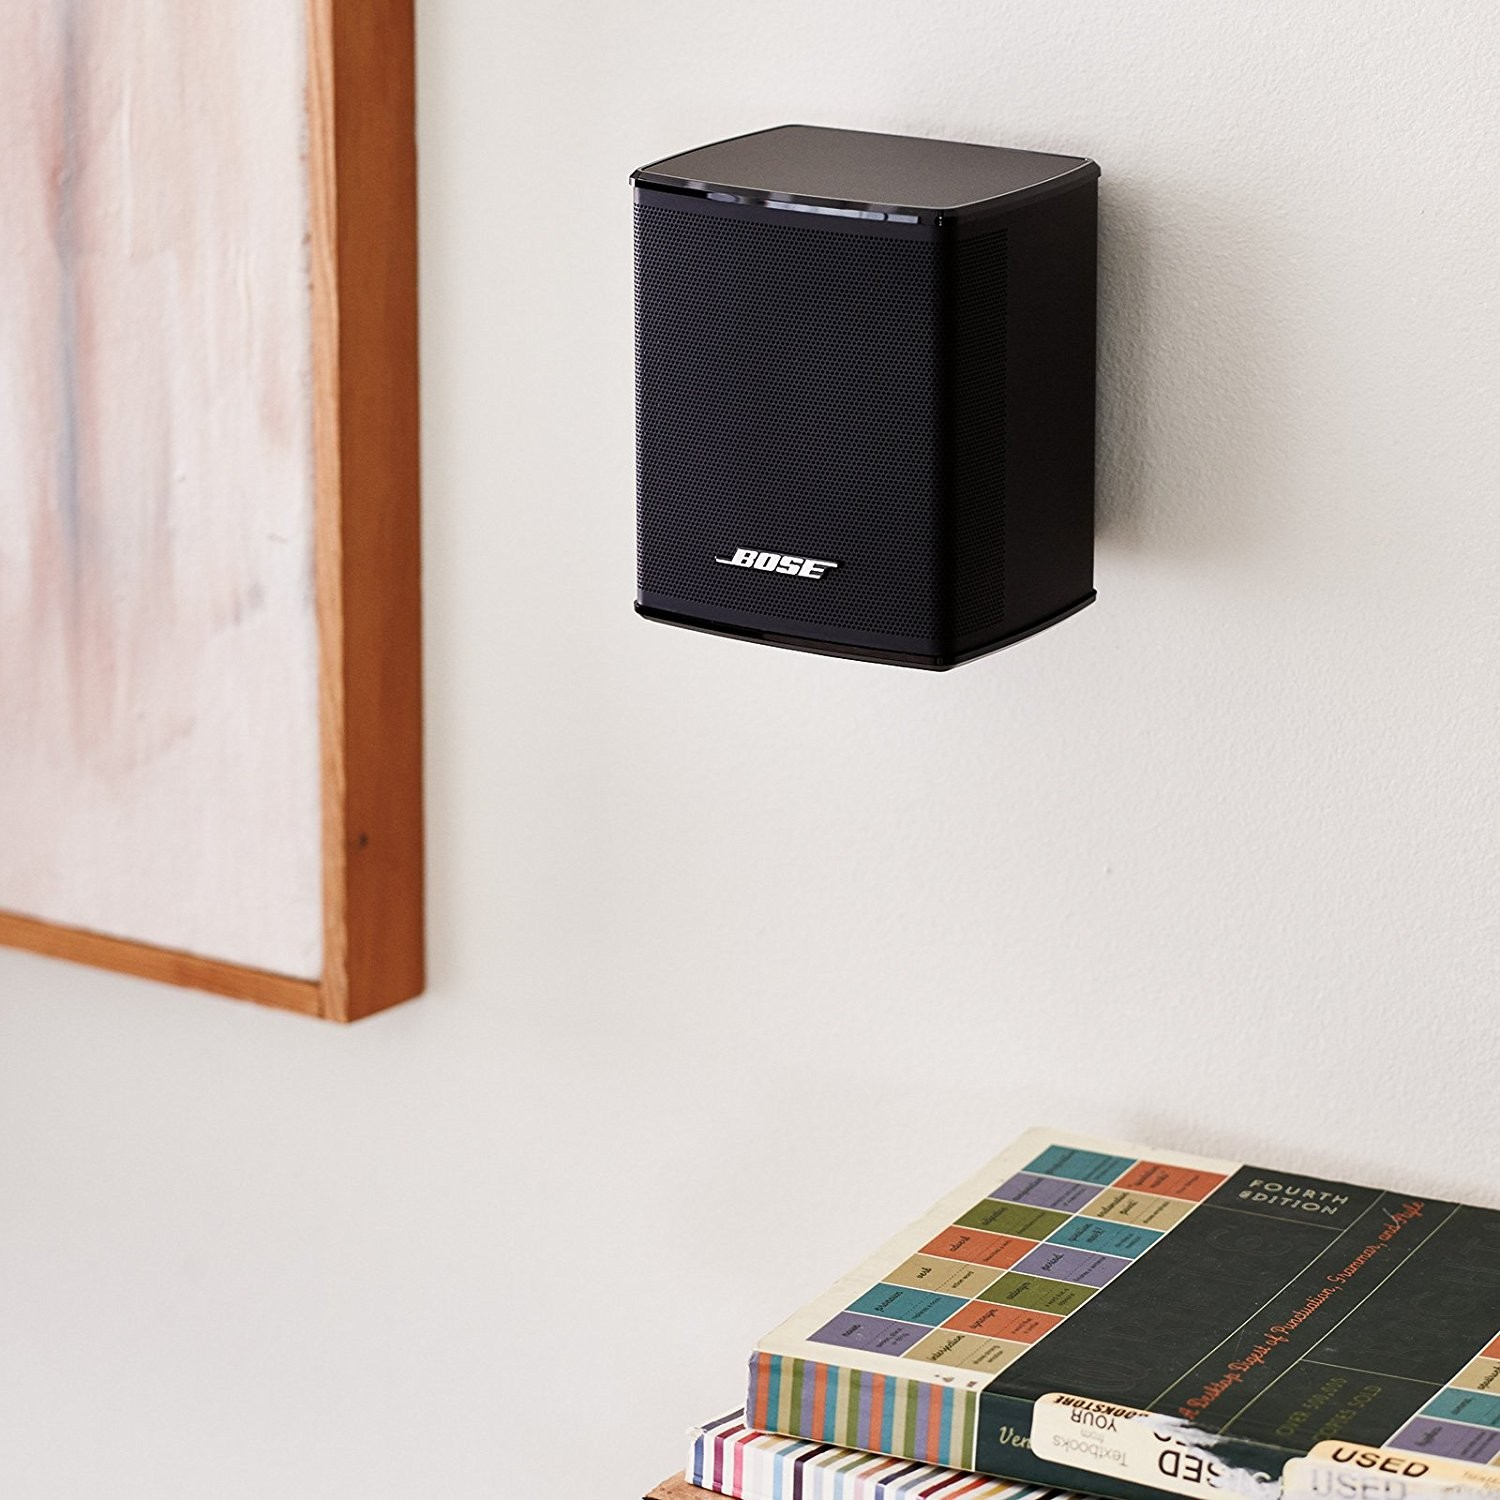 bose virtually invisible 300 bose store. Black Bedroom Furniture Sets. Home Design Ideas